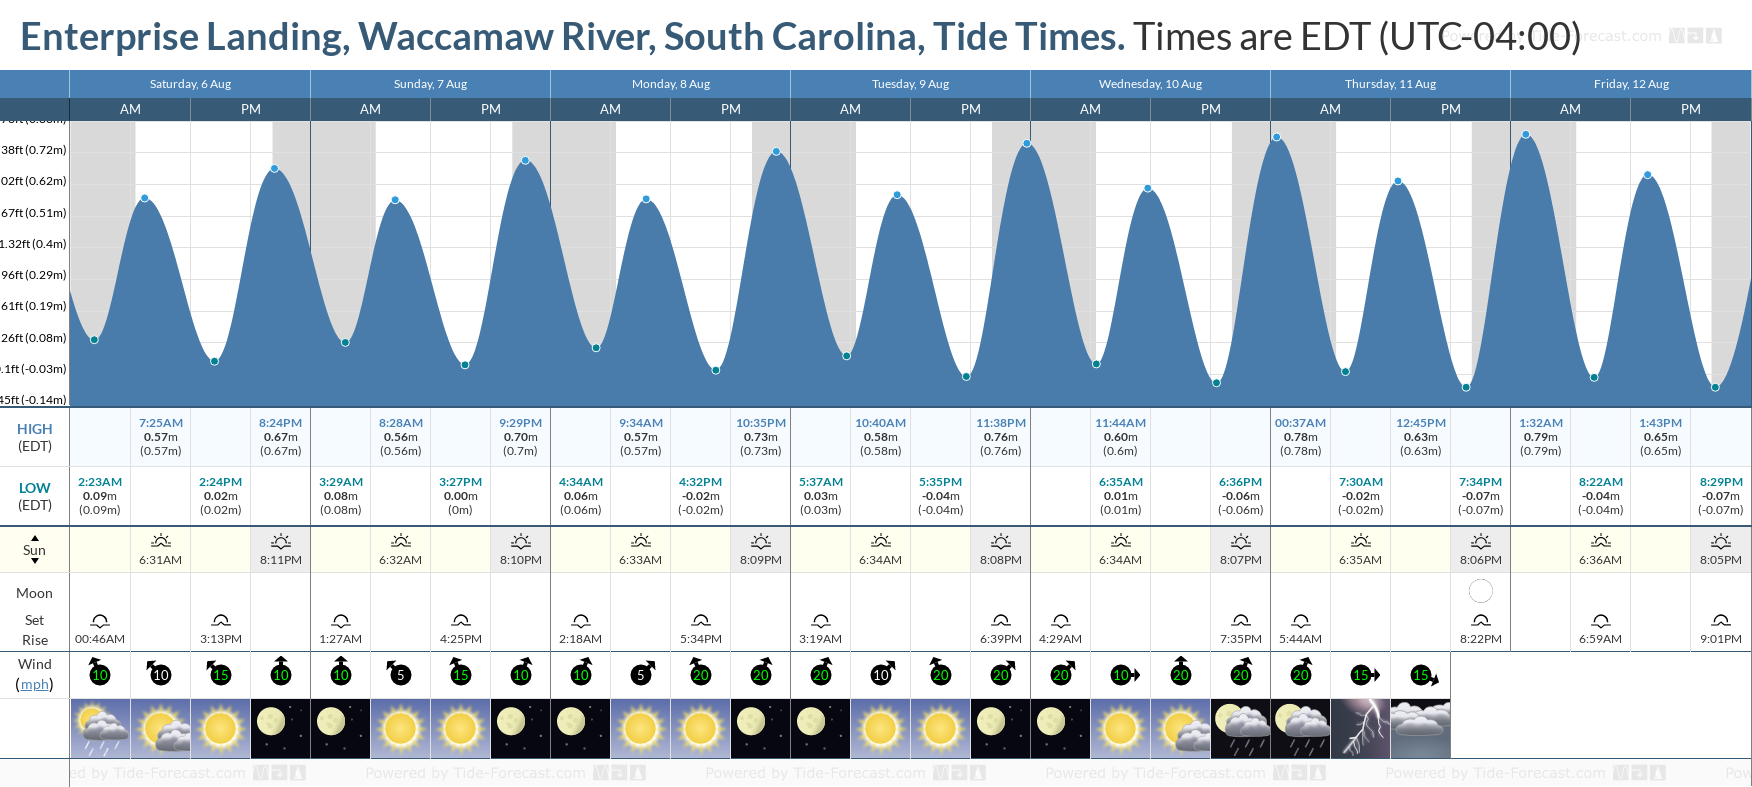 Enterprise Landing, Waccamaw River, South Carolina Tide Chart including high and low tide tide times for the next 7 days